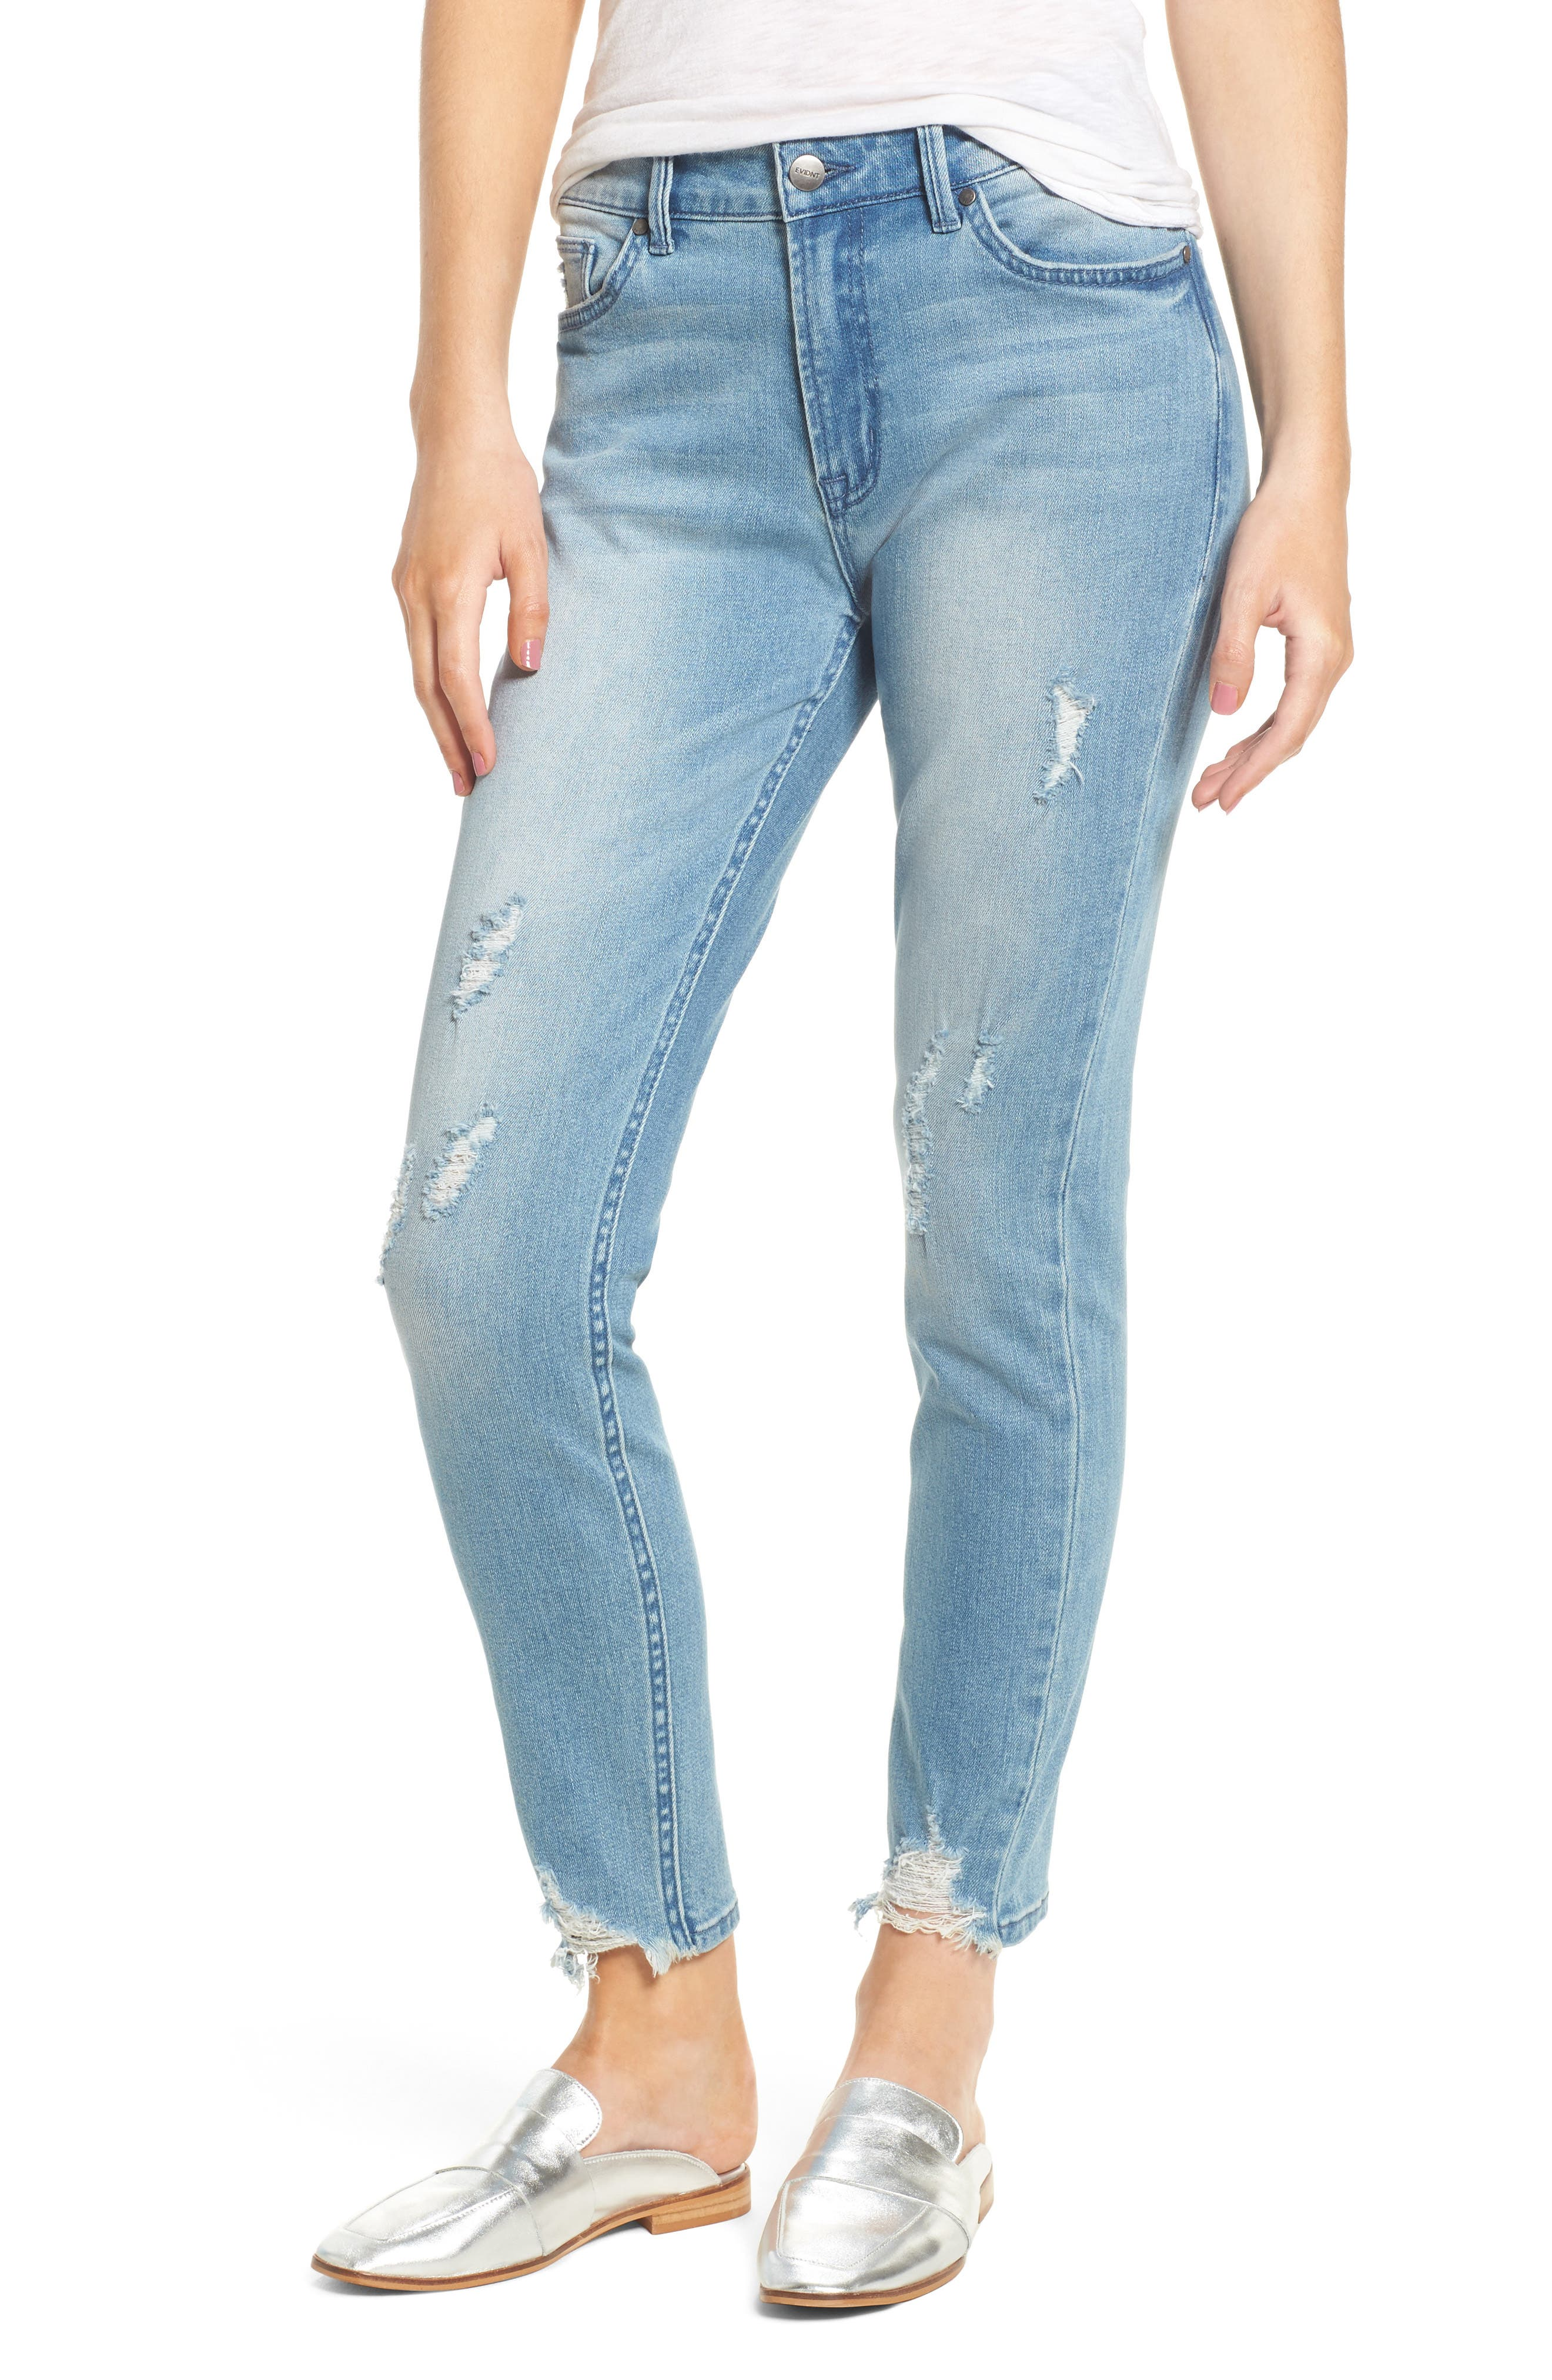 Alternate Image 1 Selected - EVIDNT Verona Skinny Jeans (Spring Street)